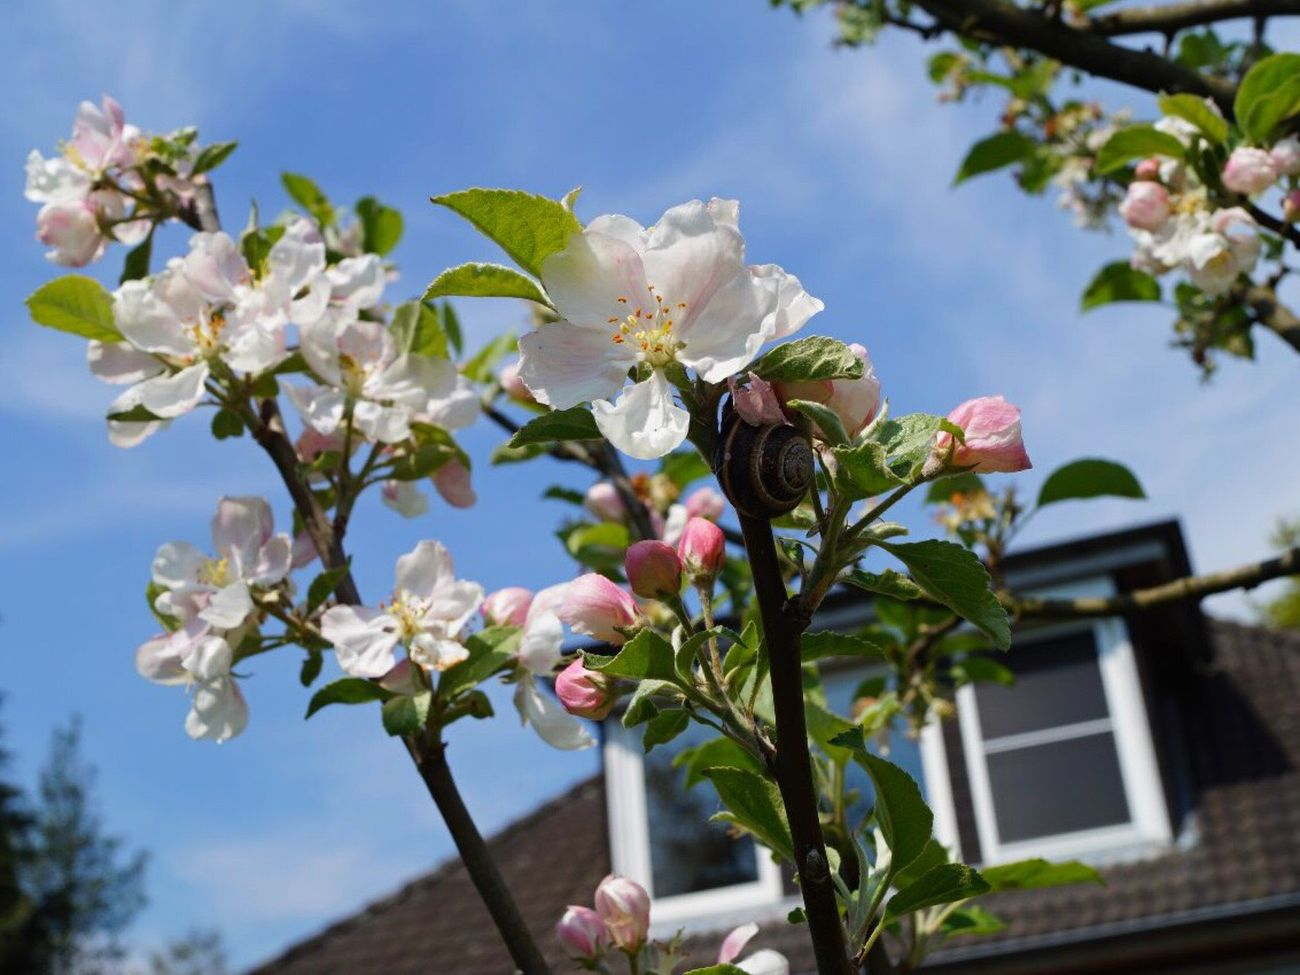 Flower Fragility Growth Beauty In Nature Nature Petal Freshness Blossom Blooming Tree Branch Apple Blossom Springtime No People Flower Head Day Outdoors Pink Color Close-up Sky Snail